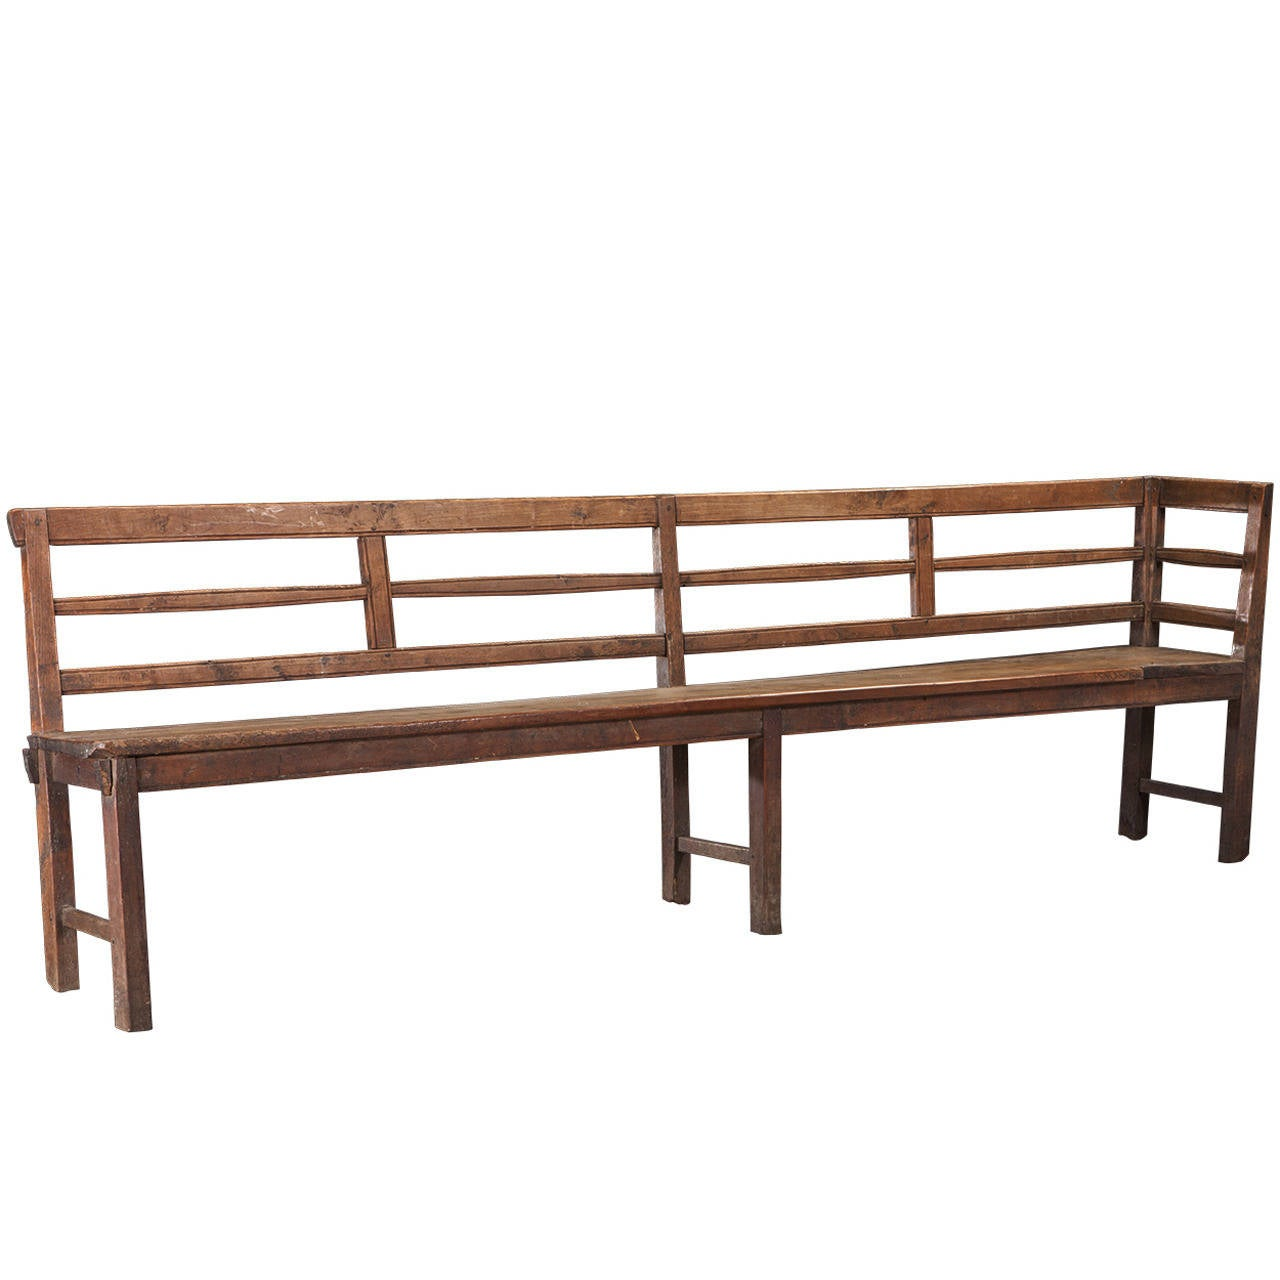 Primitive Long Wooden Bench At 1stdibs